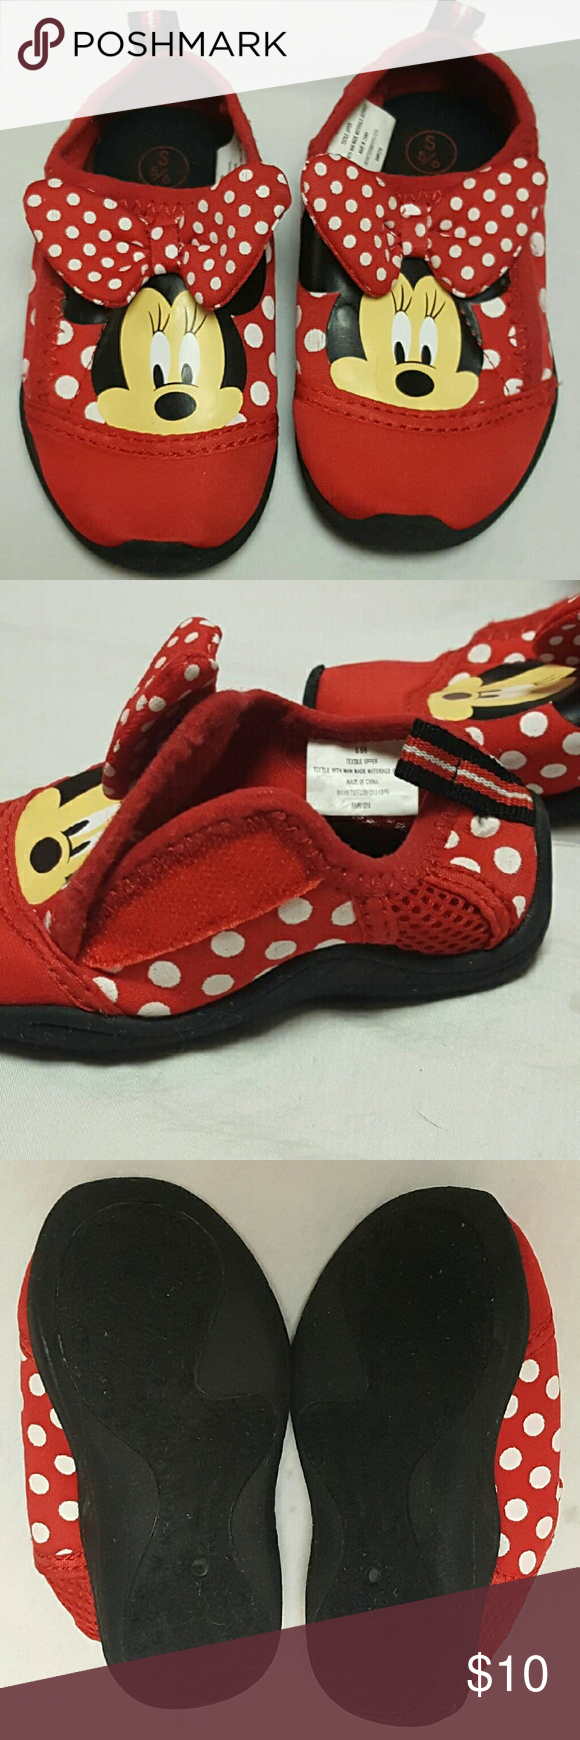 be8c5217c7e2 Minnie Mouse Shoes Toddler Girls Size 5 6 Disney Minnie Mouse Water   Swim  Shoes Toddler Girls Size 5 6 Velcro Closure Worn Once Disney Shoes Water  Shoes